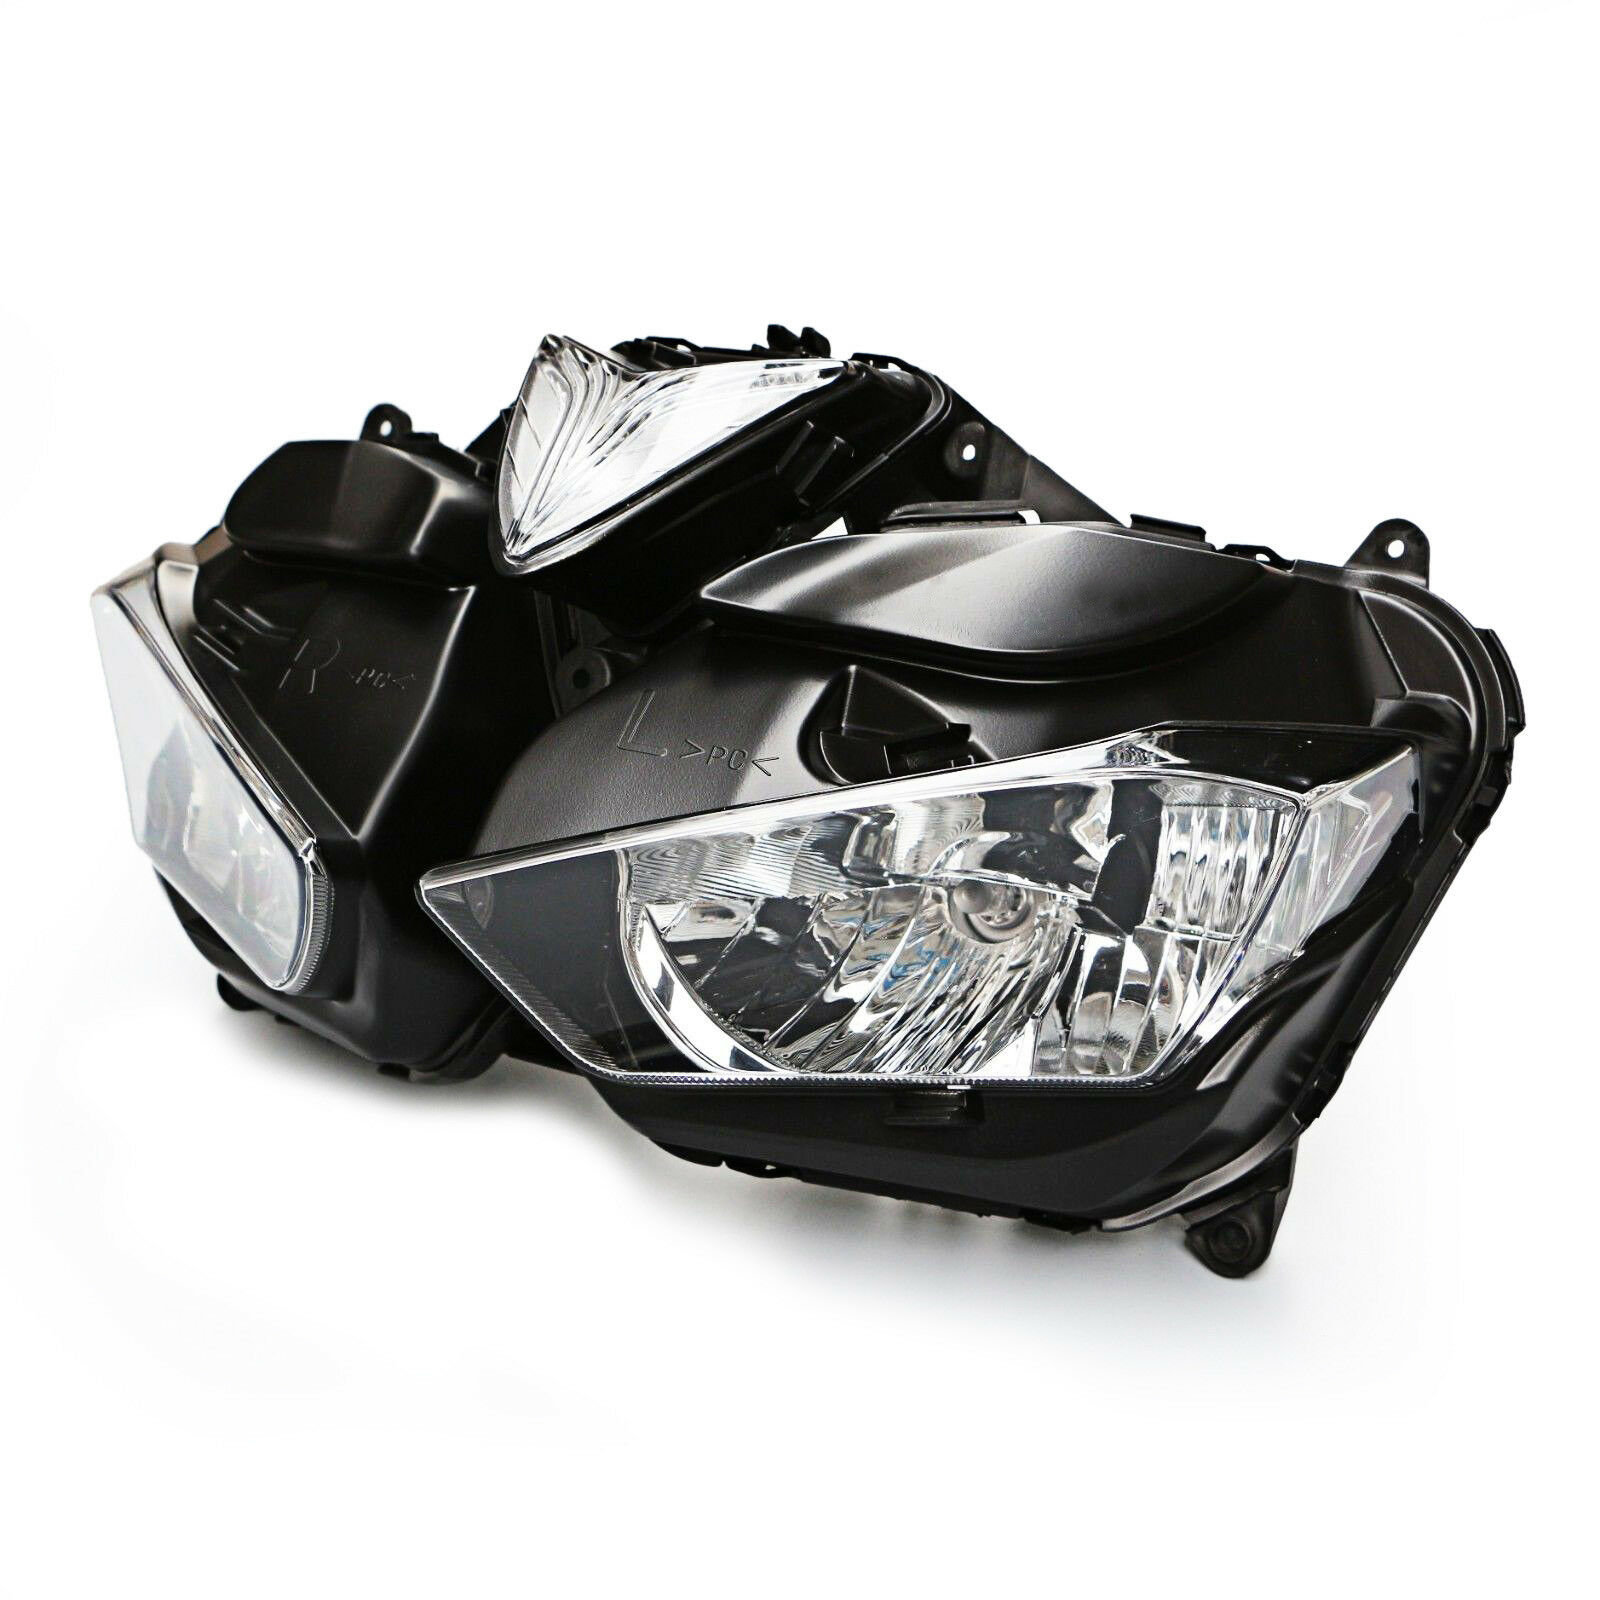 Motorcycle <font><b>Headlight</b></font> Accessories For YAMAHA YZF <font><b>R25</b></font> R3 <font><b>Headlight</b></font> Lamp Head Light Housing YZF-<font><b>R25</b></font> R3 2014 2015 2016 image